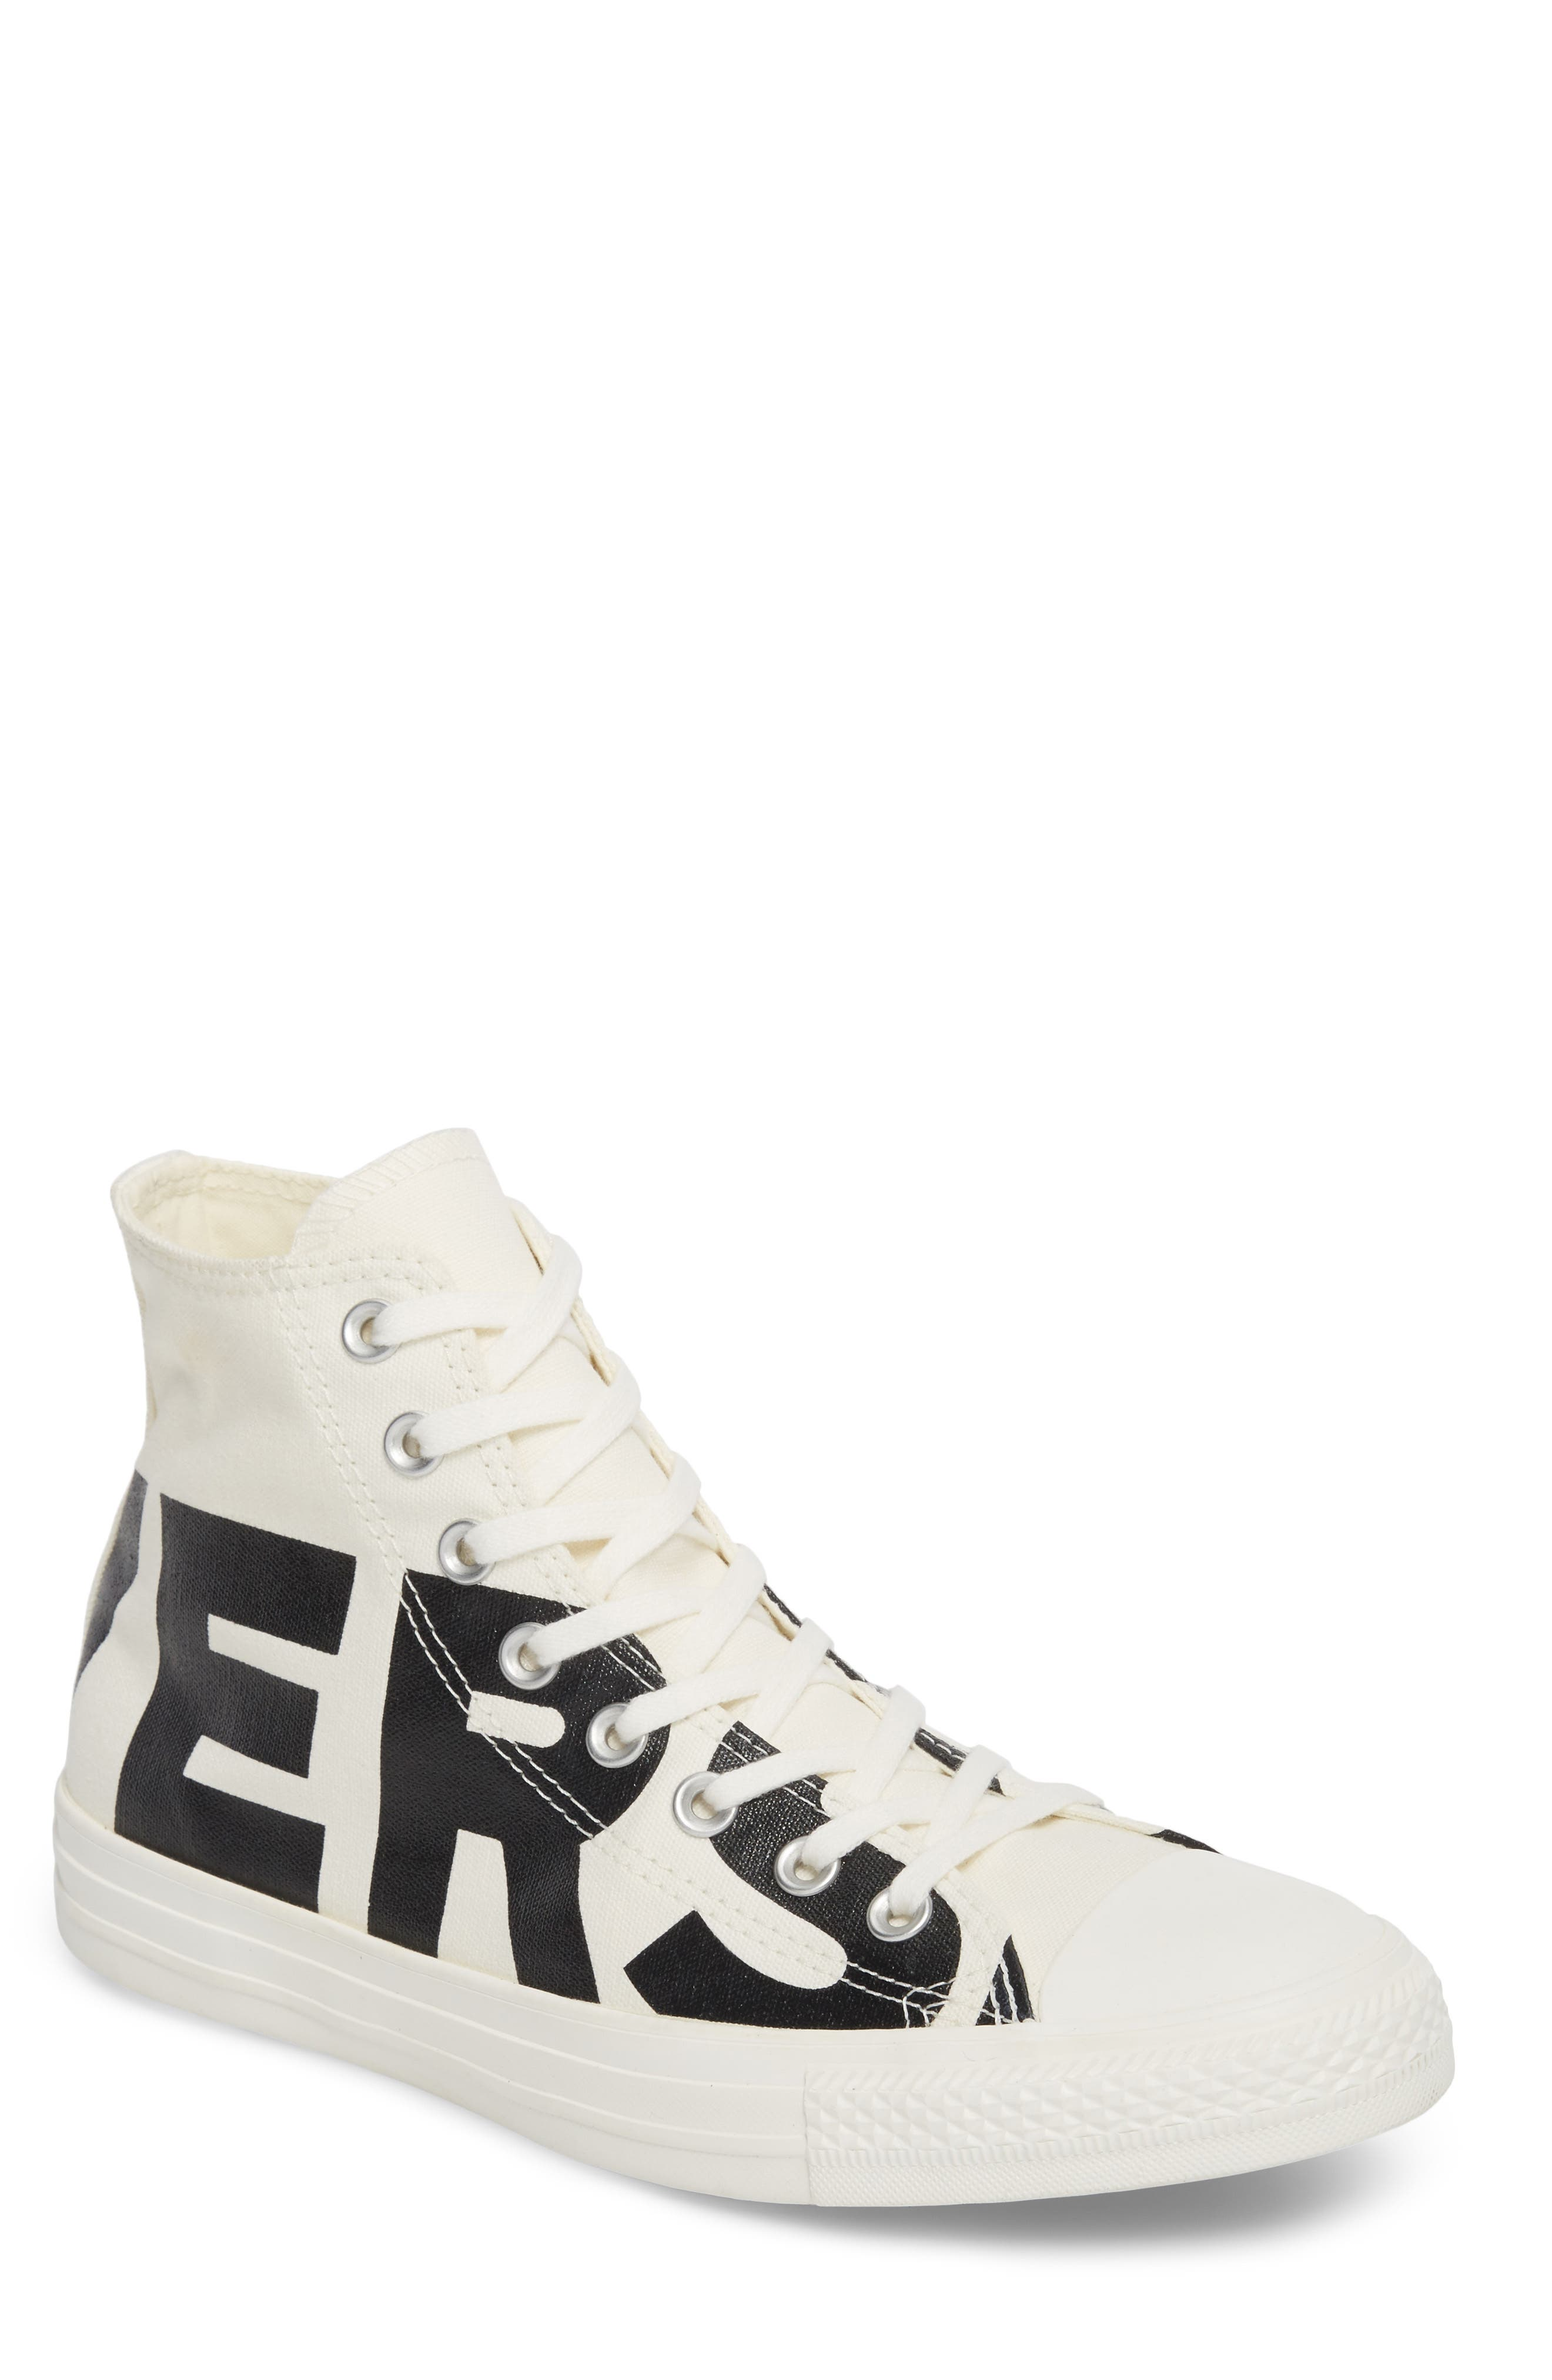 One Star Wordmark High Top Sneaker,                         Main,                         color, Black